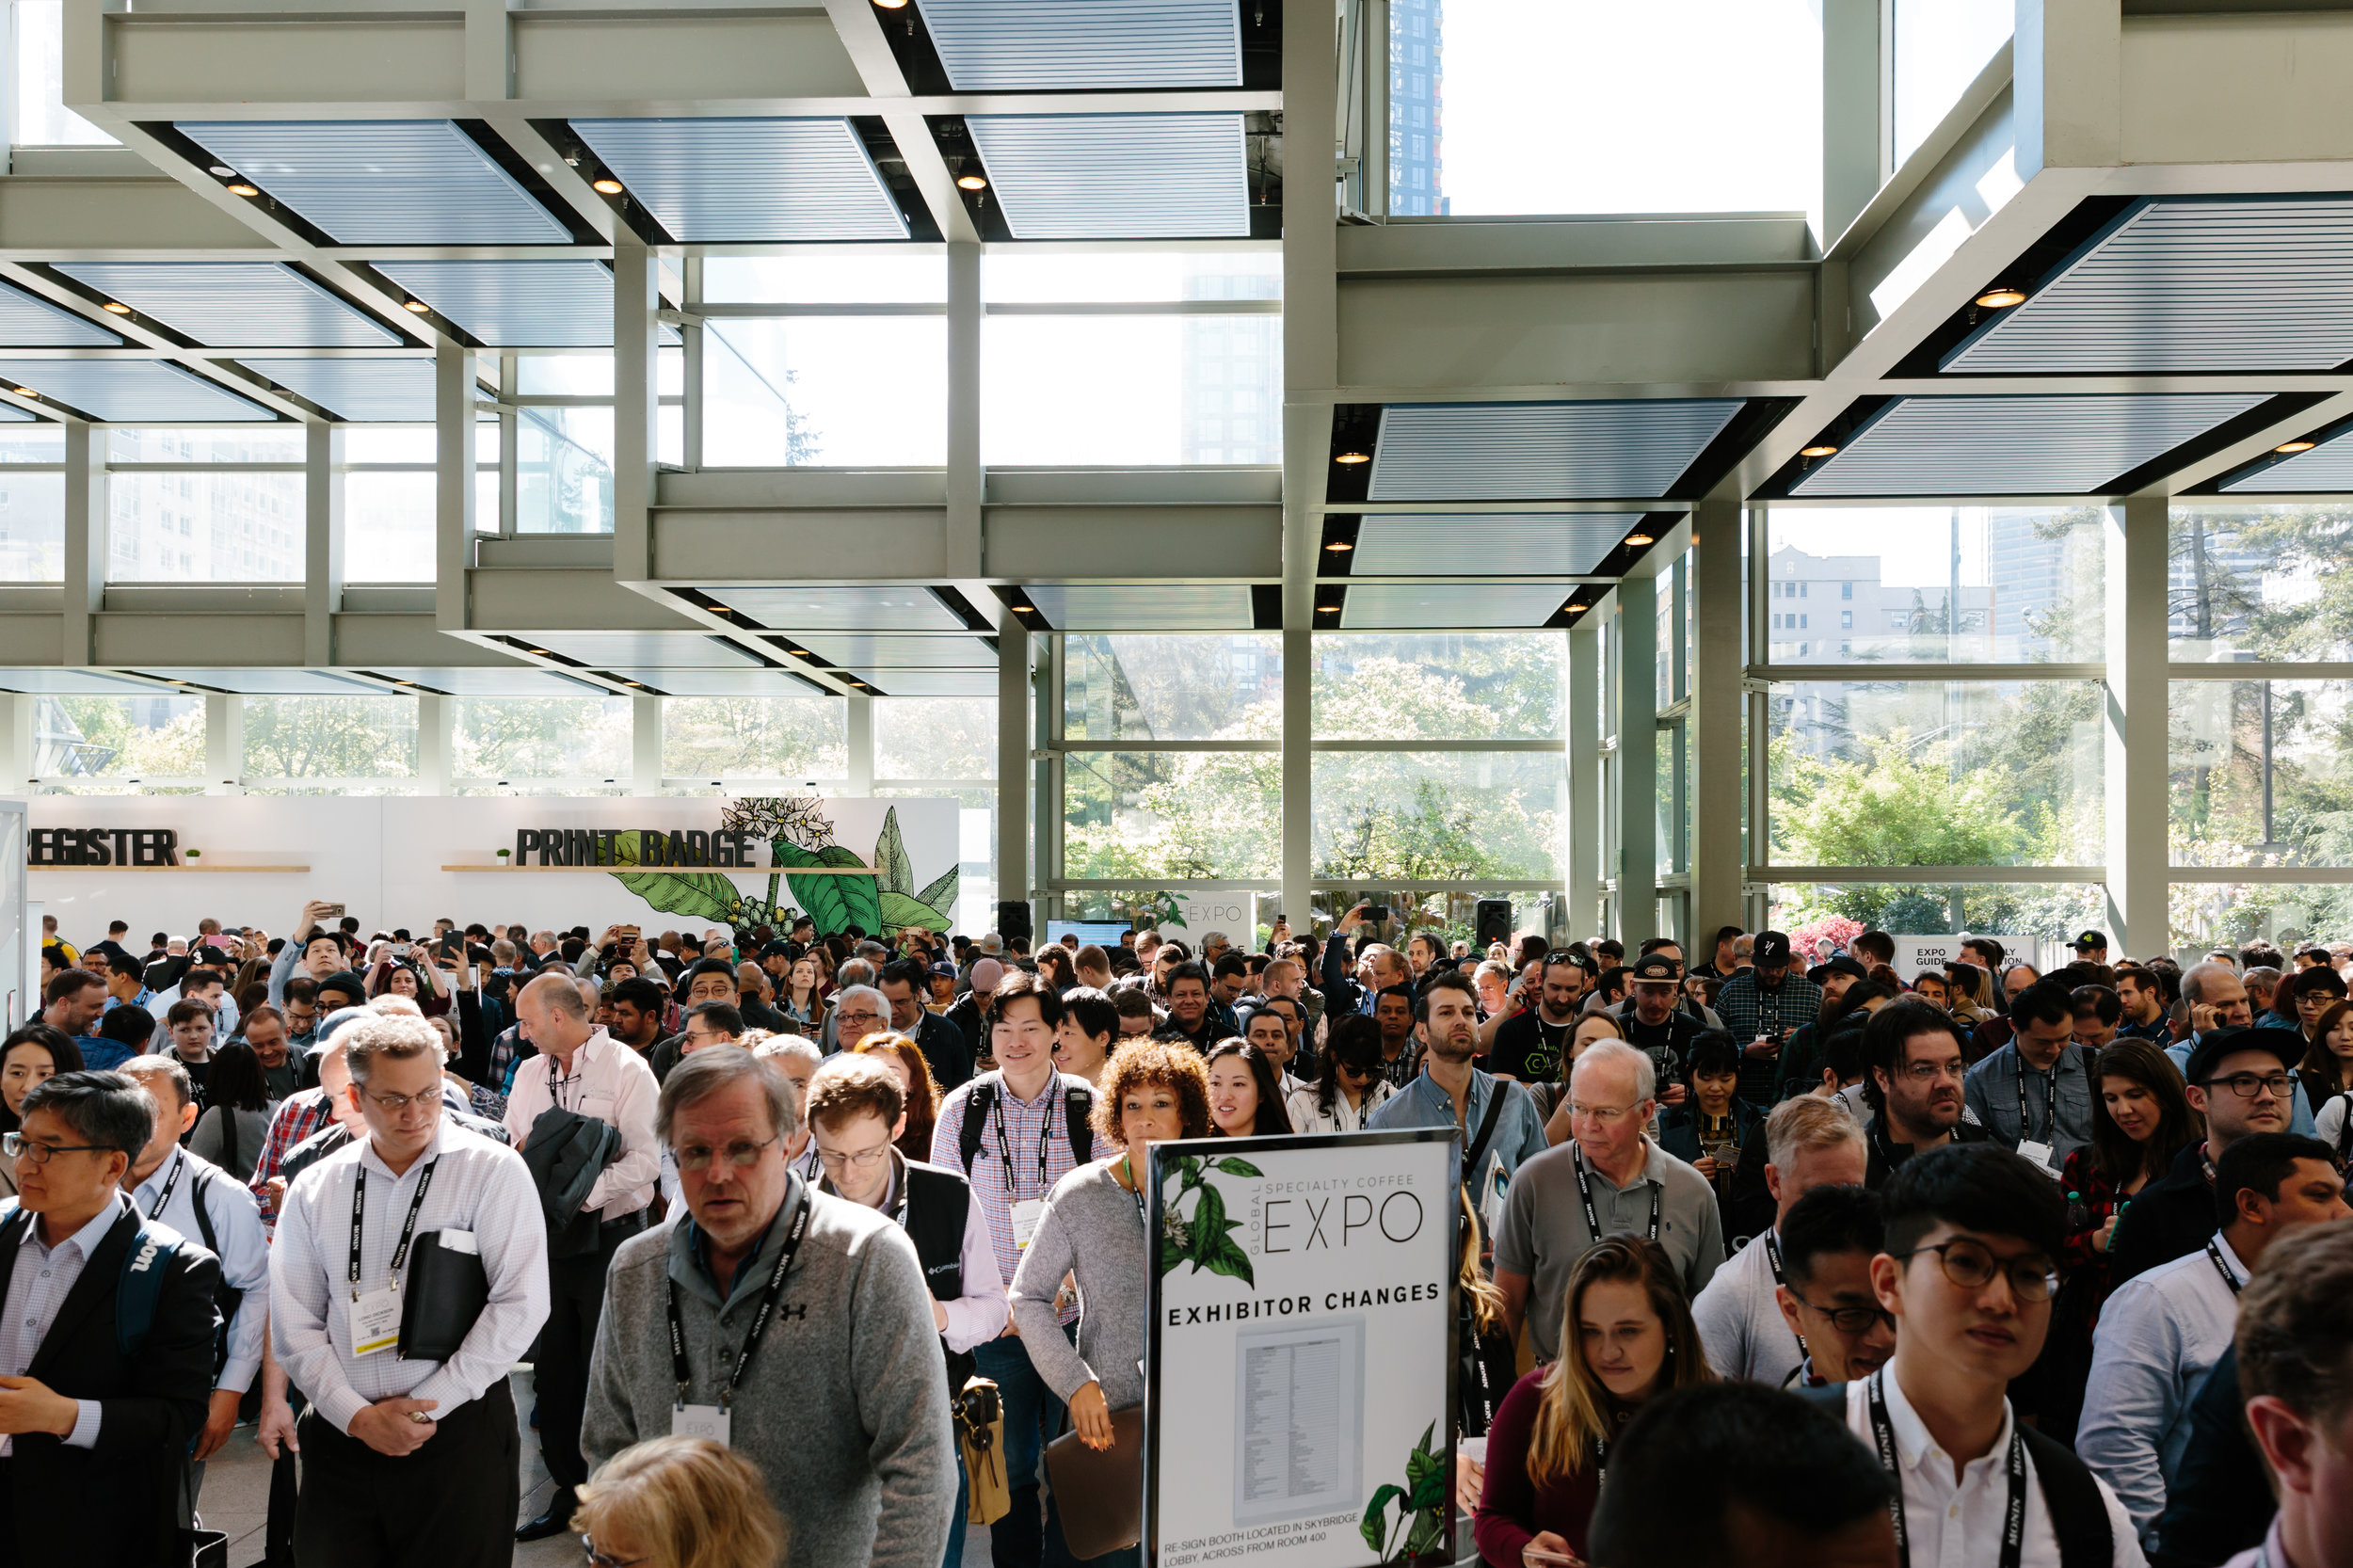 Specialty Coffee Expo newcomers and veterans alike usually have one question on their mind as they collect their badge in: Where do I start? -